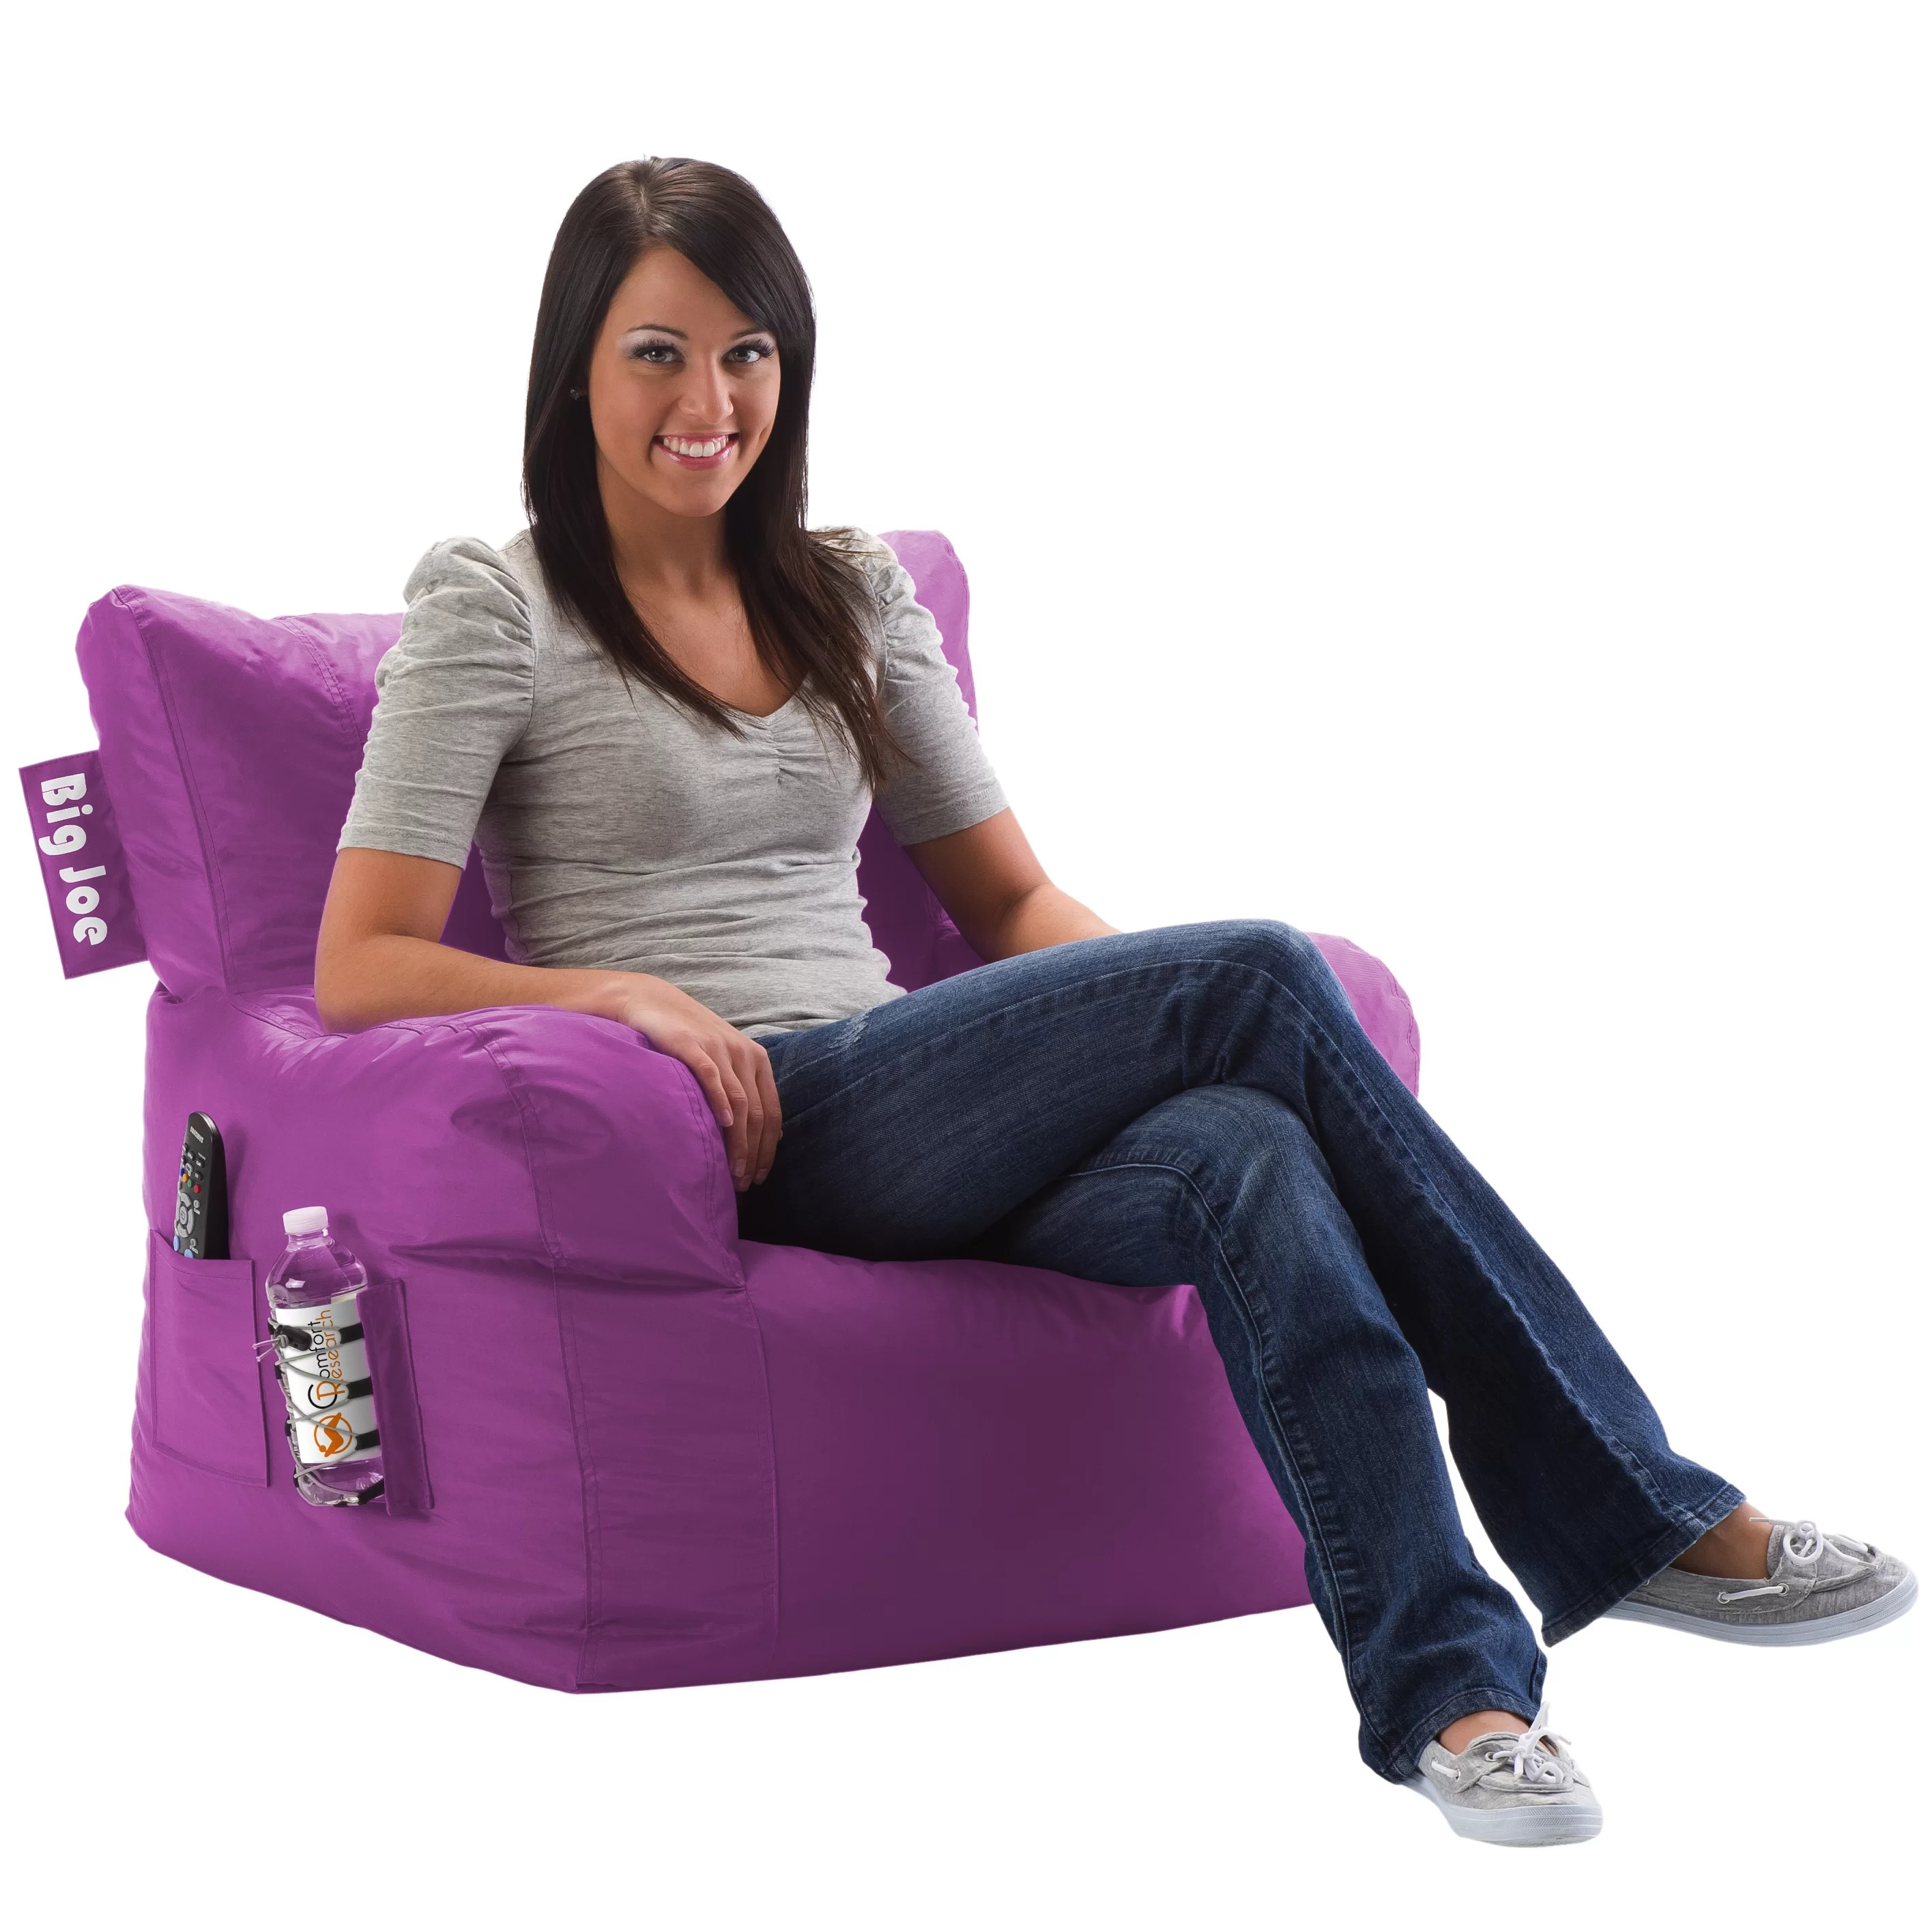 big joe bean bag chair pink costco chairs outdoor comfort research and reviews wayfair